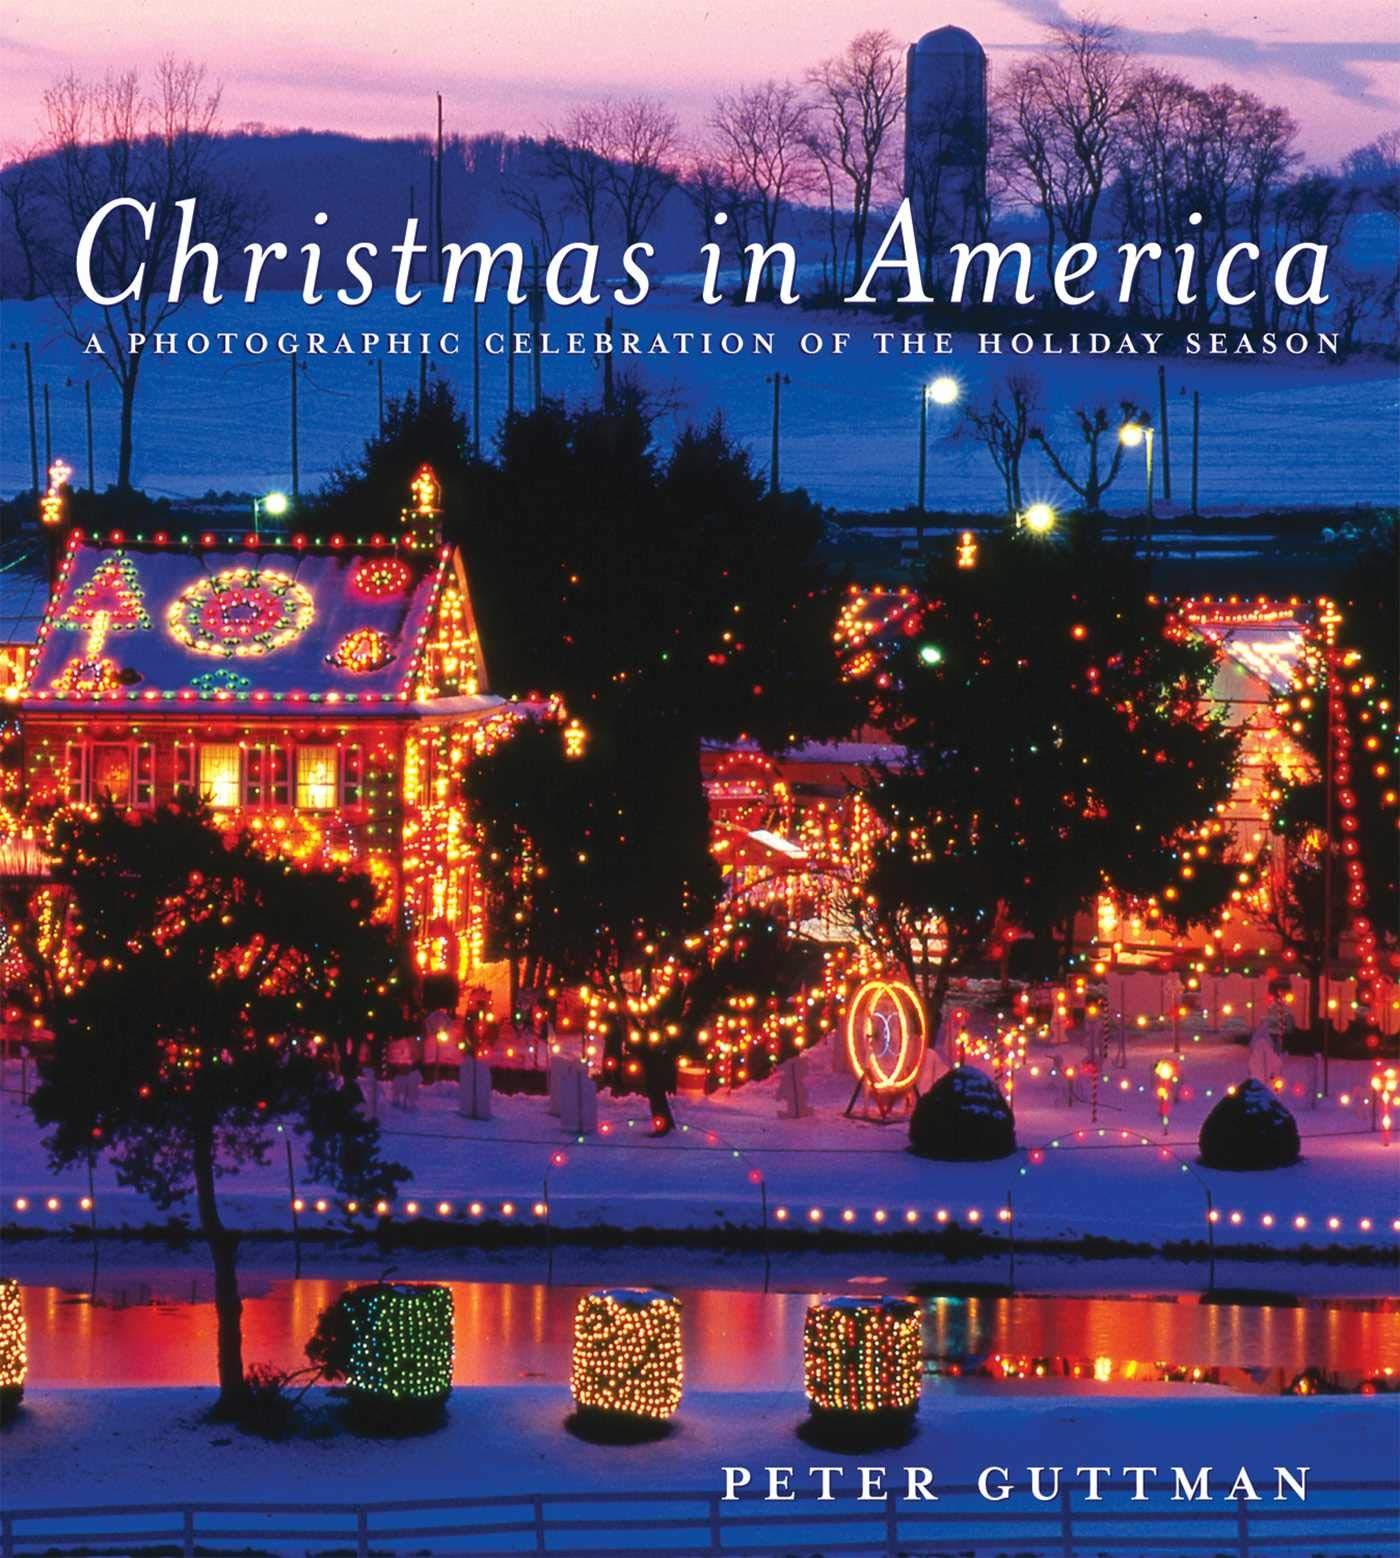 Christmas Celebration In America.Christmas In America A Photographic Celebration Of The